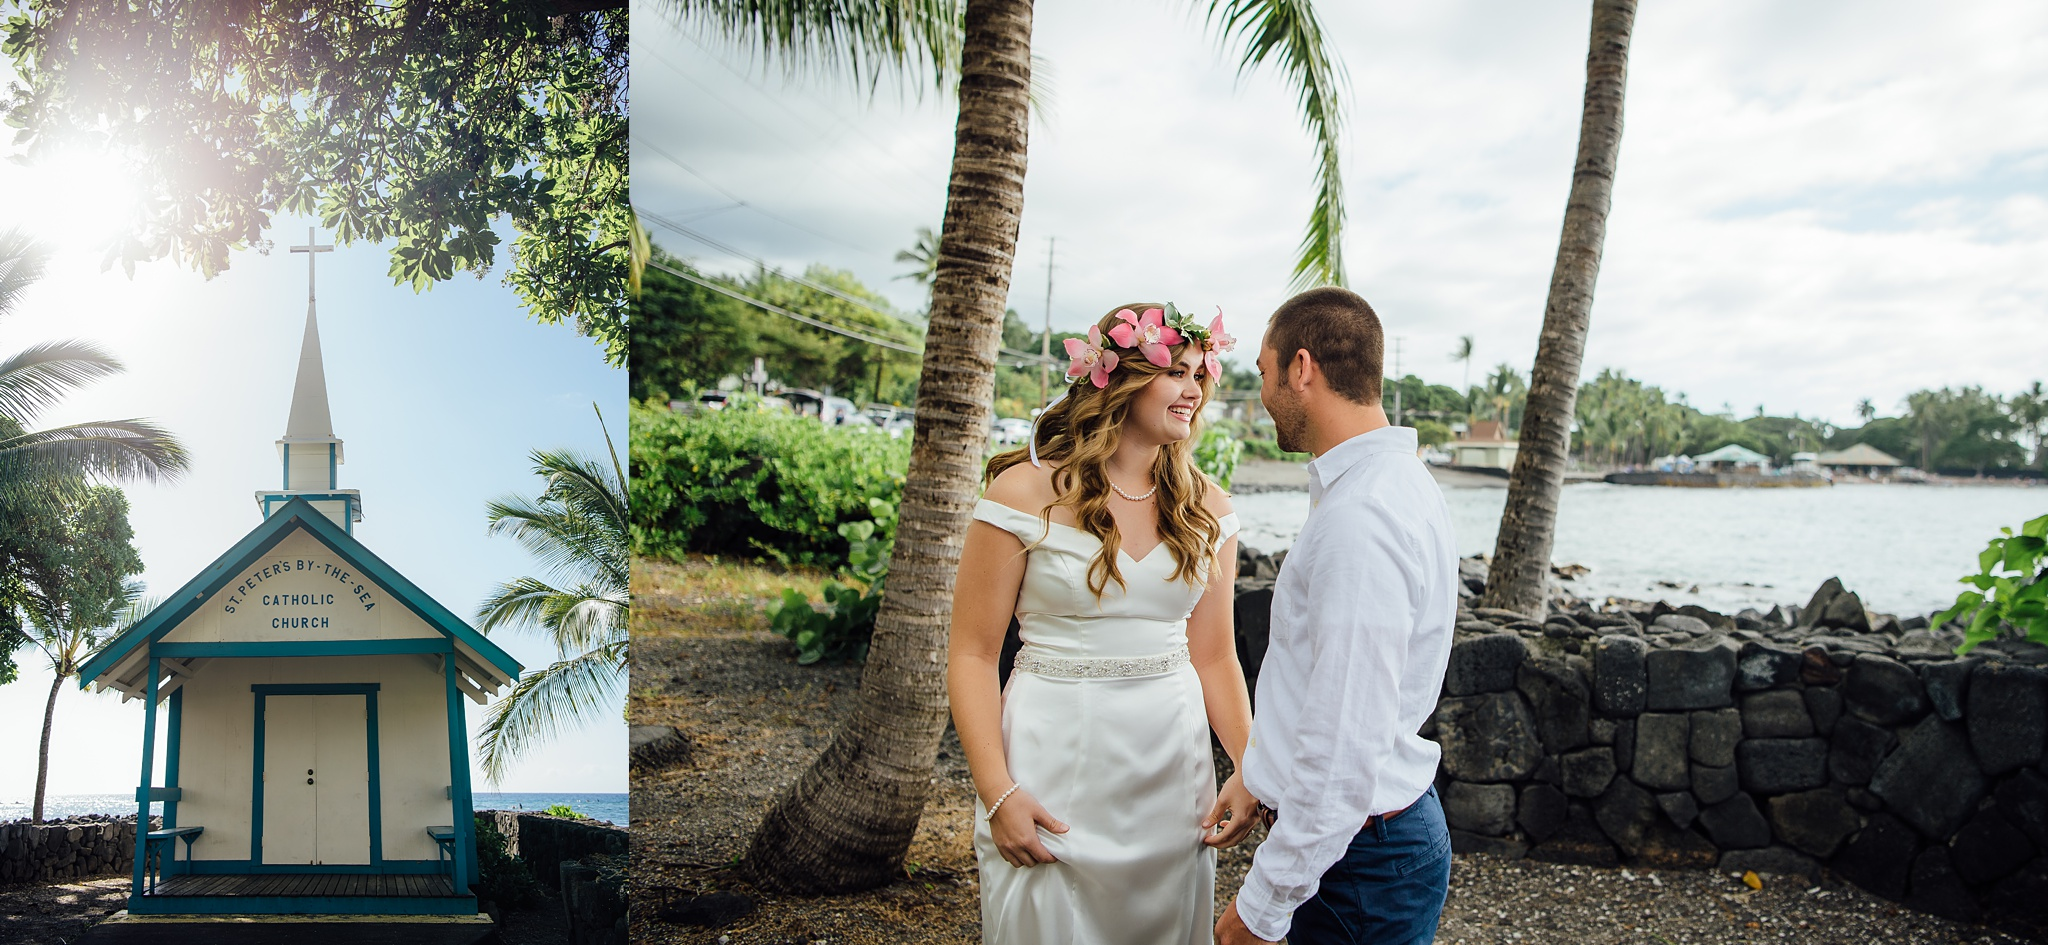 Catholic Wedding Kona by the Sea